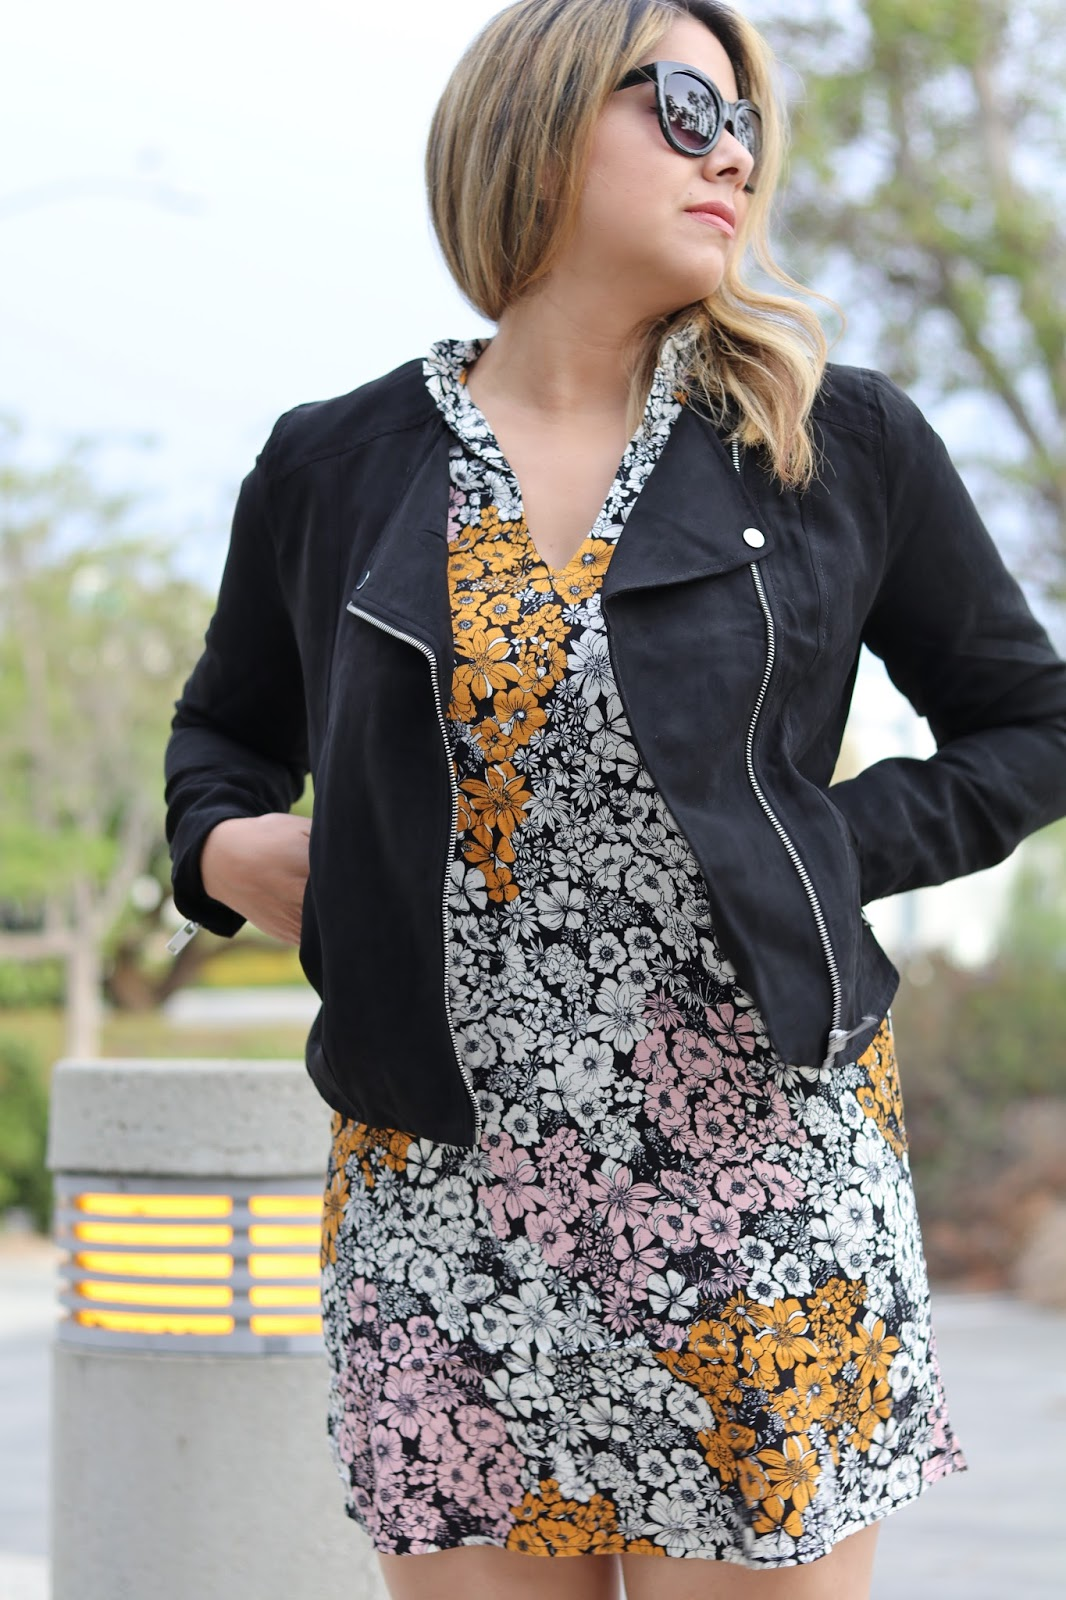 H&M floral dress, fall floral dress, fall printed dress, H&M moto jacket, H&M biker jacket